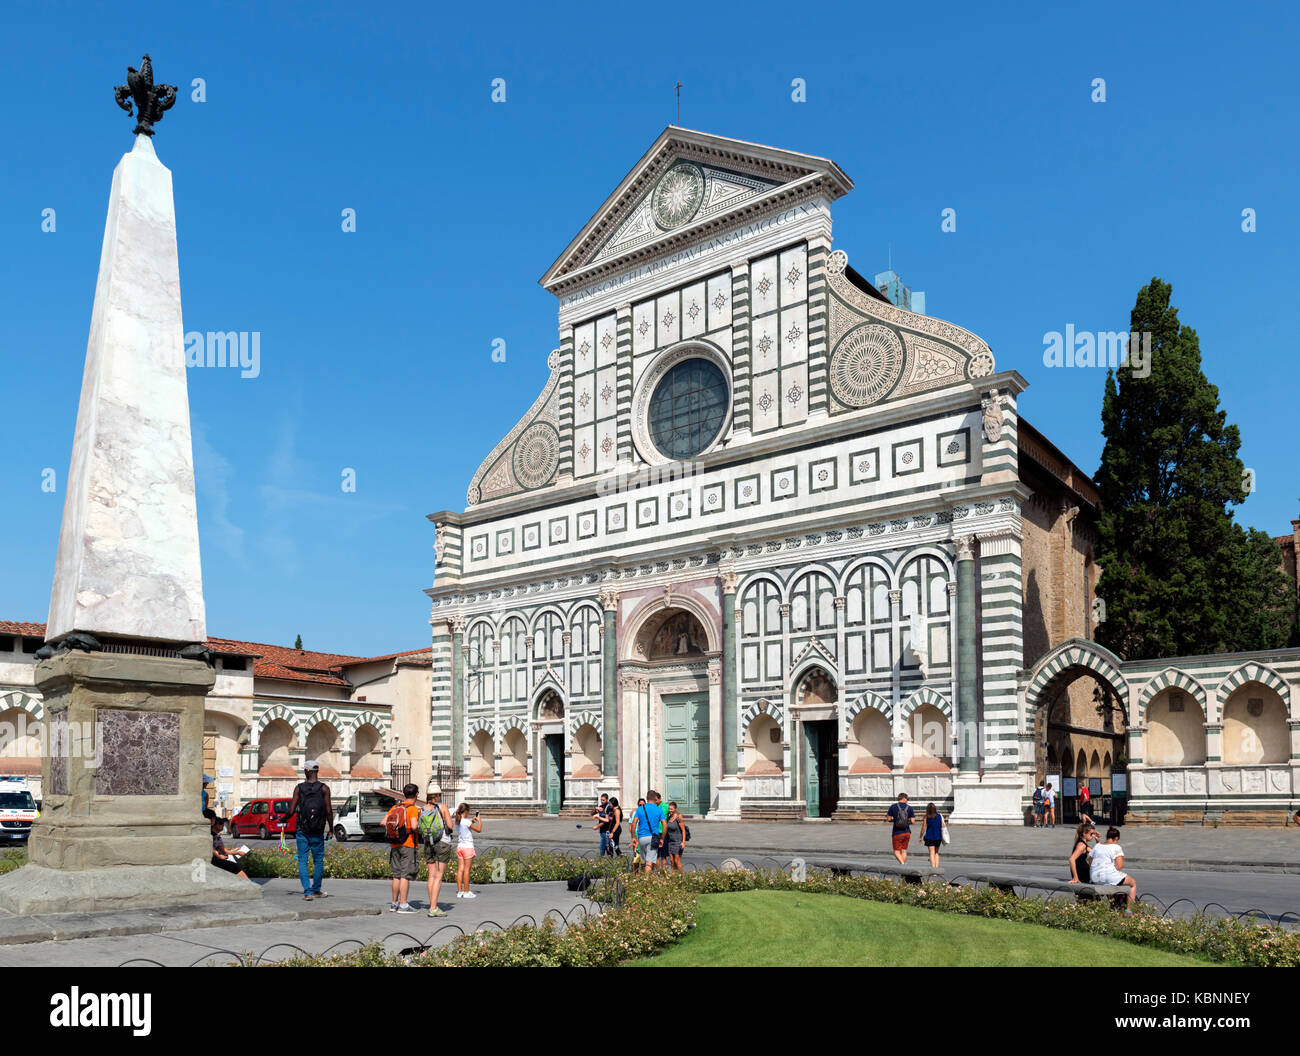 The Church of Santa Maria Novella, Florence, Italy. - Stock Image